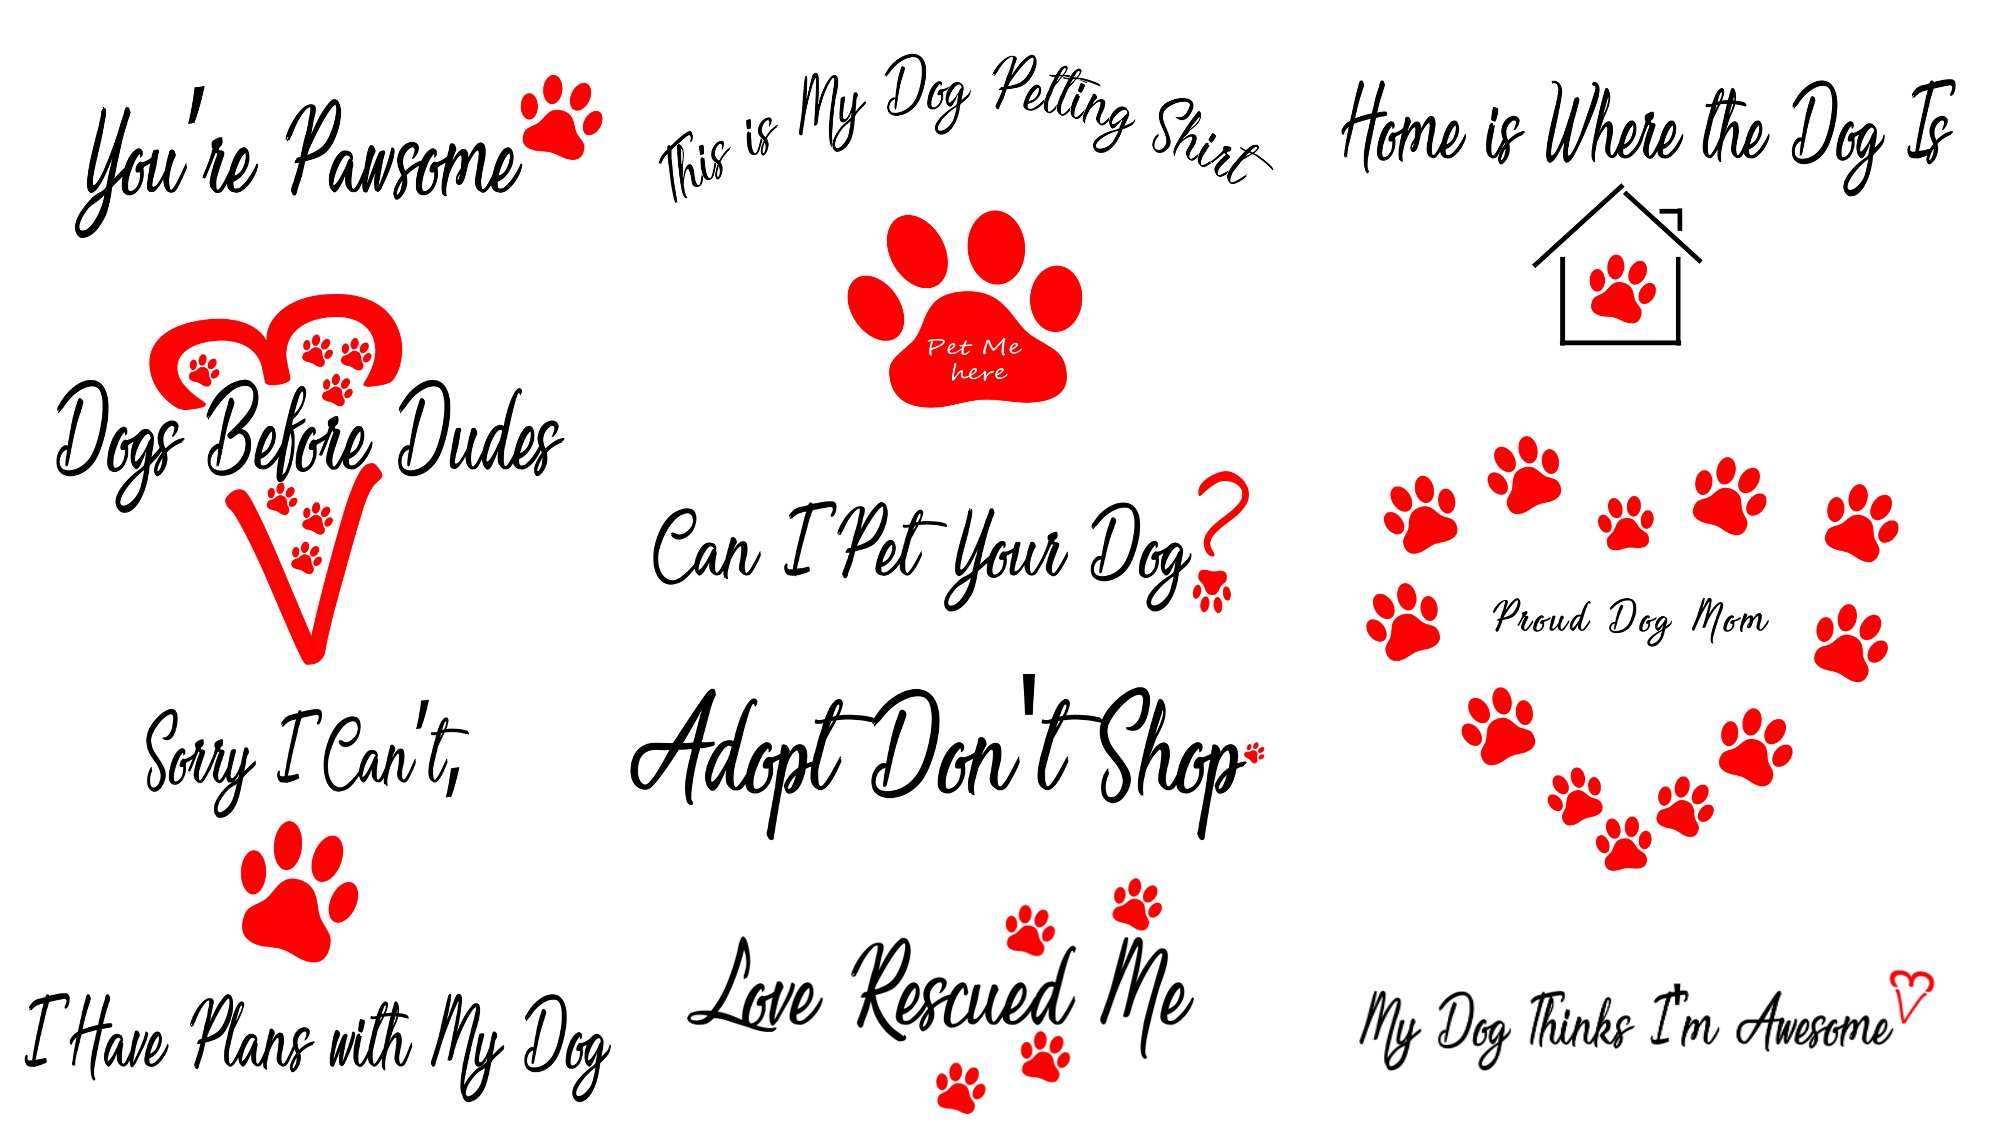 10 Dog Product Templates with Commercial Use Rights